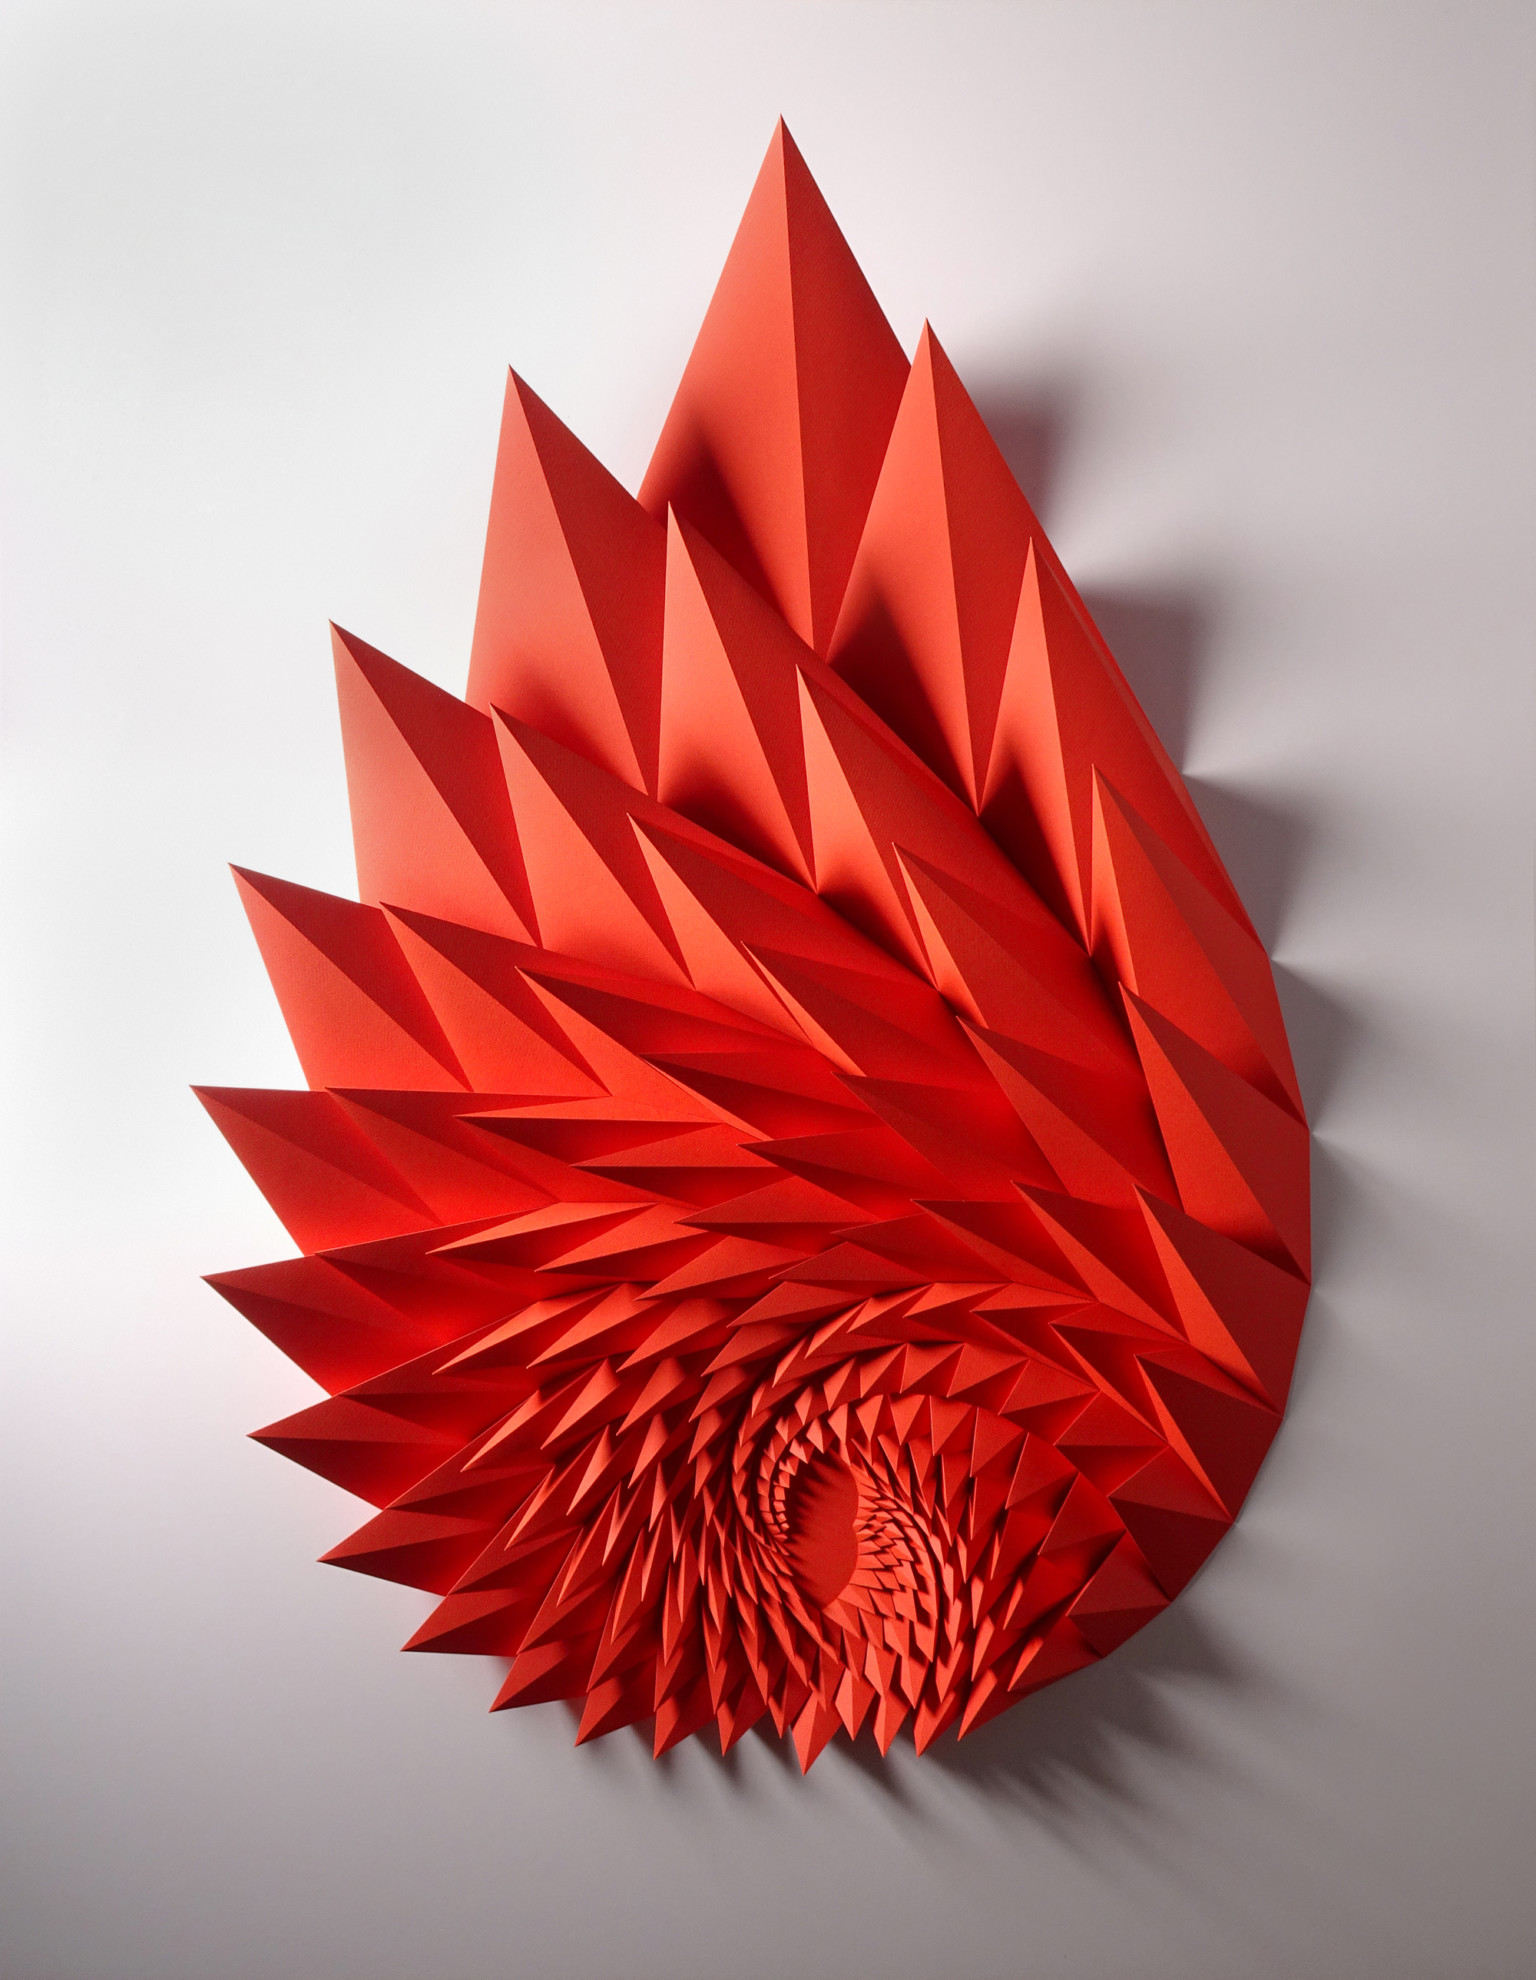 Folded paper sculpture by Matthew Shlian